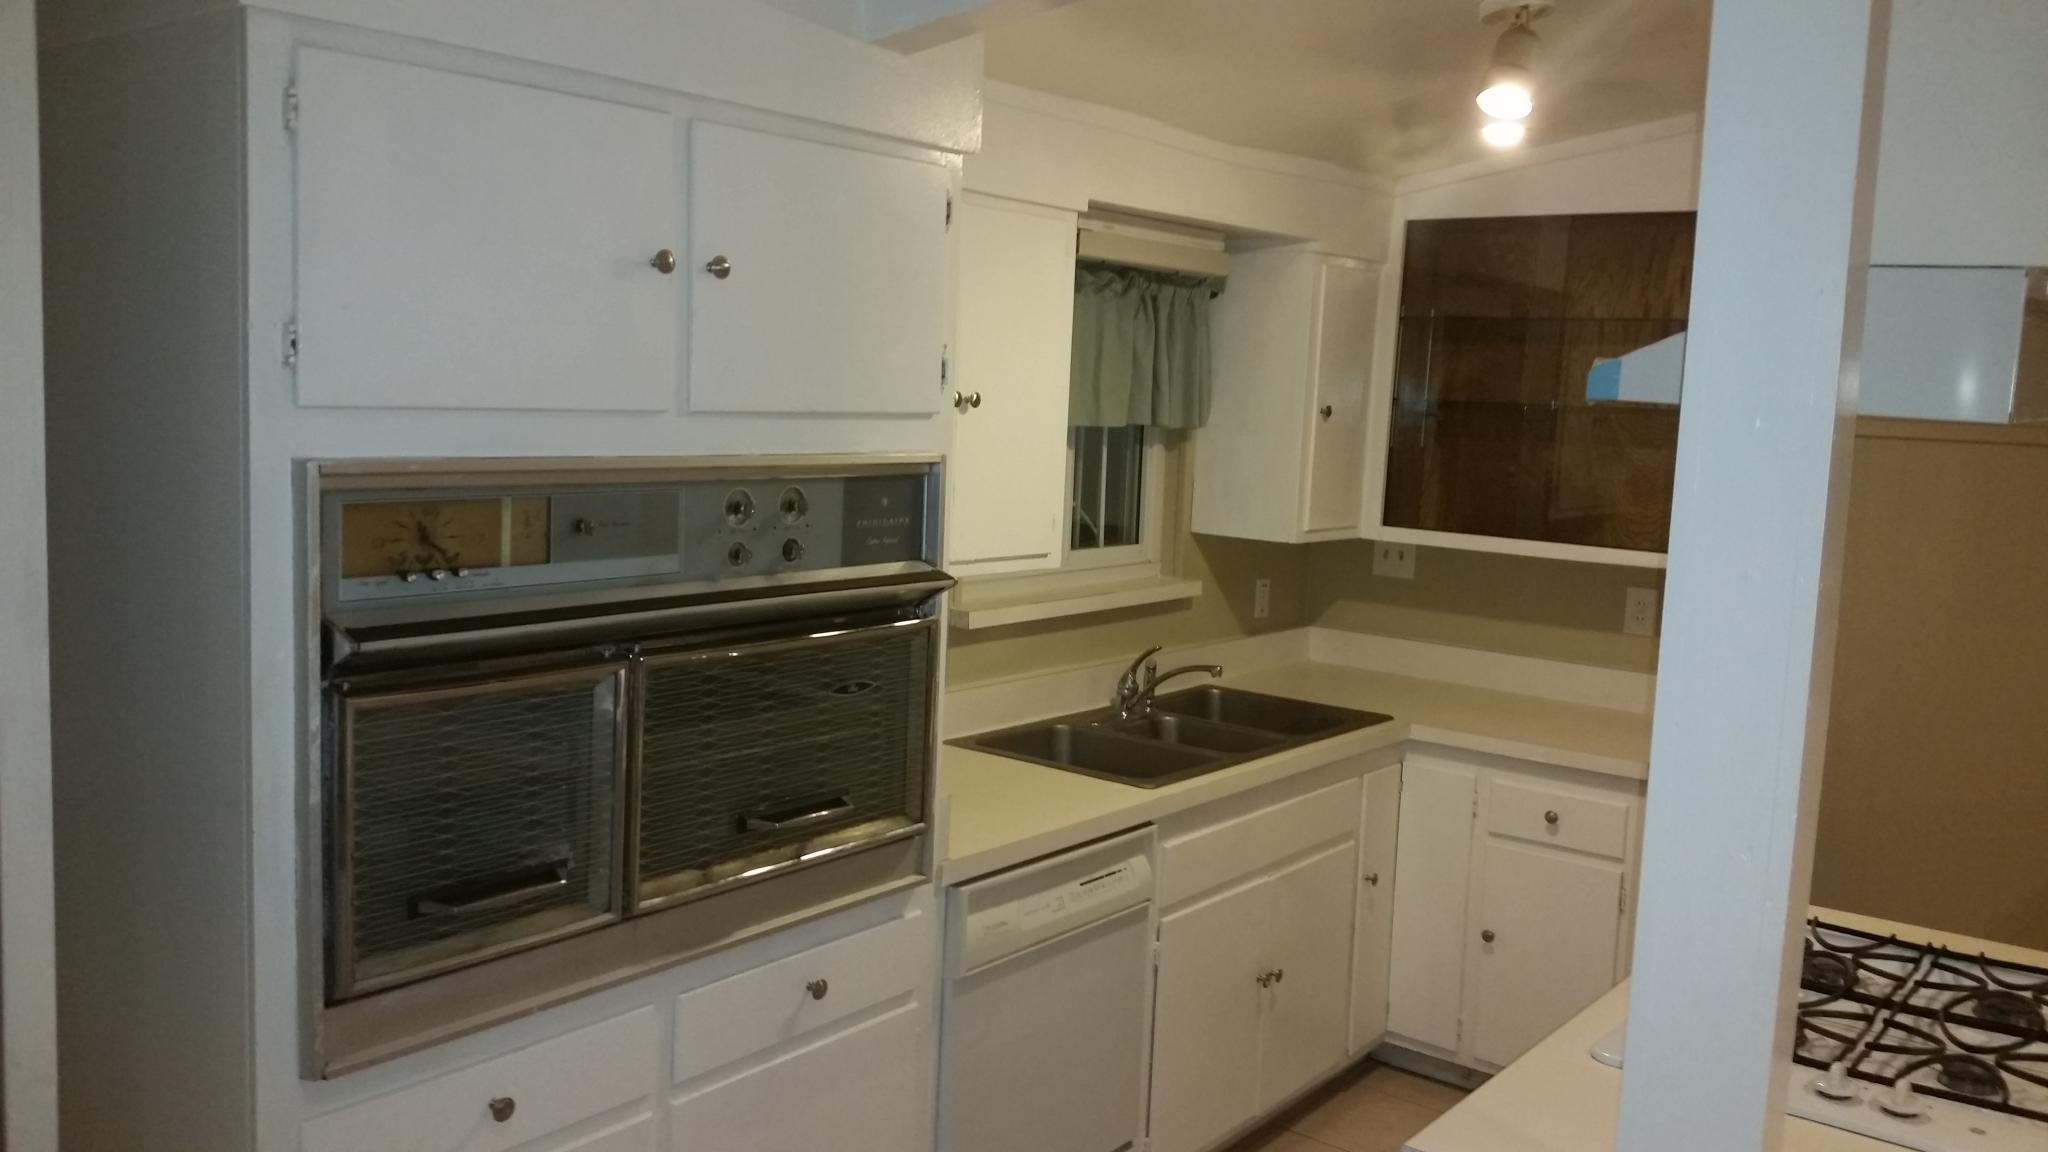 Address Not Disclosed, Stanton, CA 90680 For Rent   Trulia